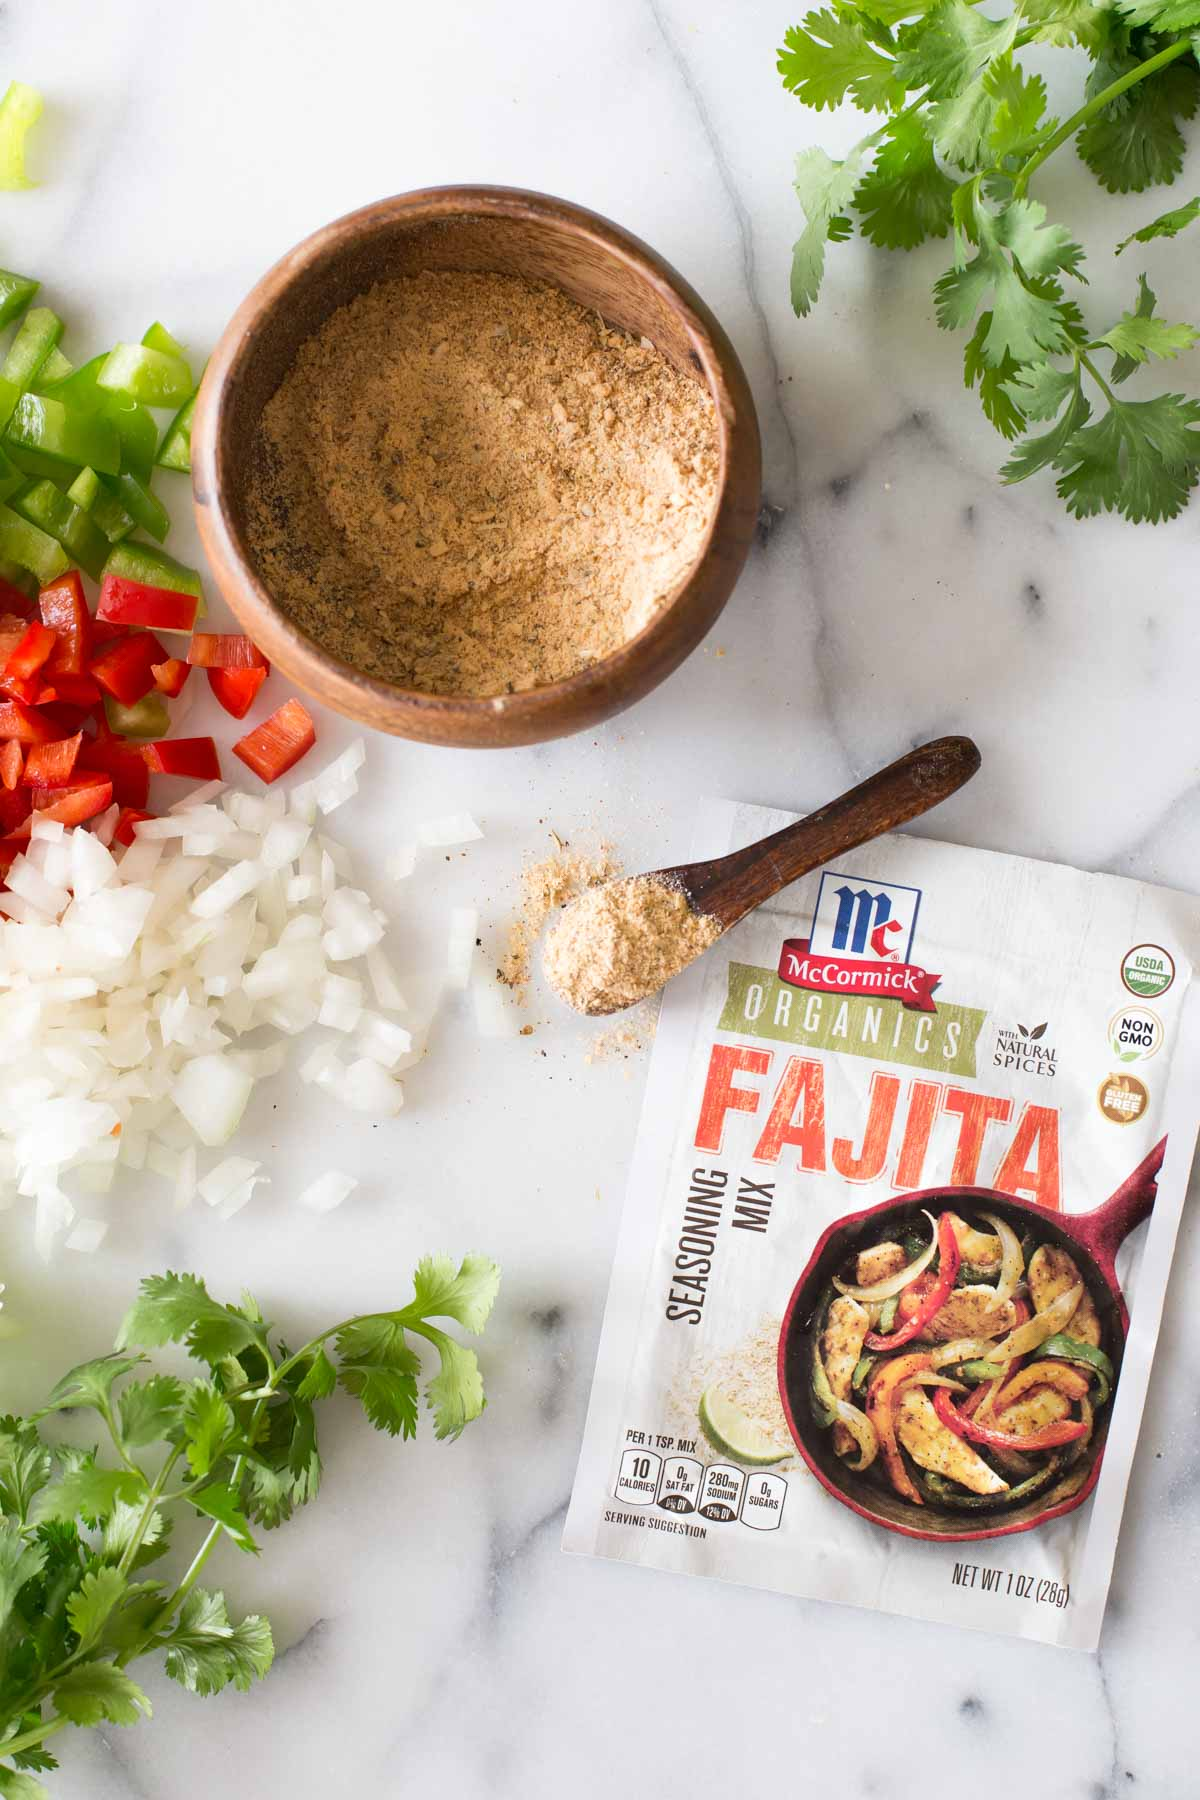 A packet of McCormick Organics Fajita Seasoning Mix, with a small wood spoon of the seasoning mix next to a small wood bowl of the seasoning mix, along with copped green and red peppers, chopped onions and fresh cilantro.